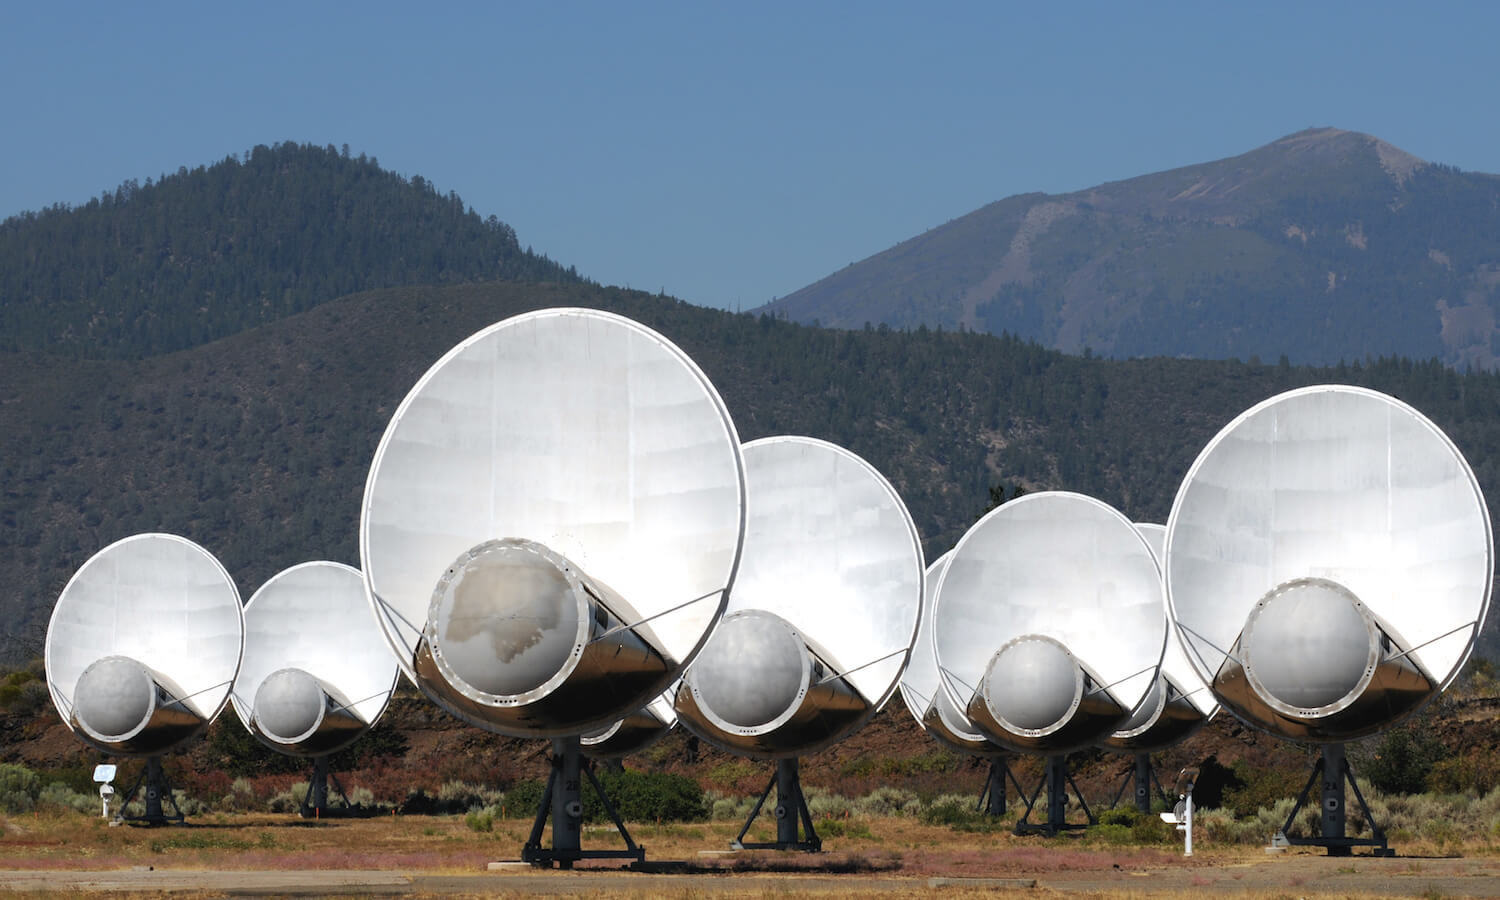 SETI antennas listening for alien broadcasts